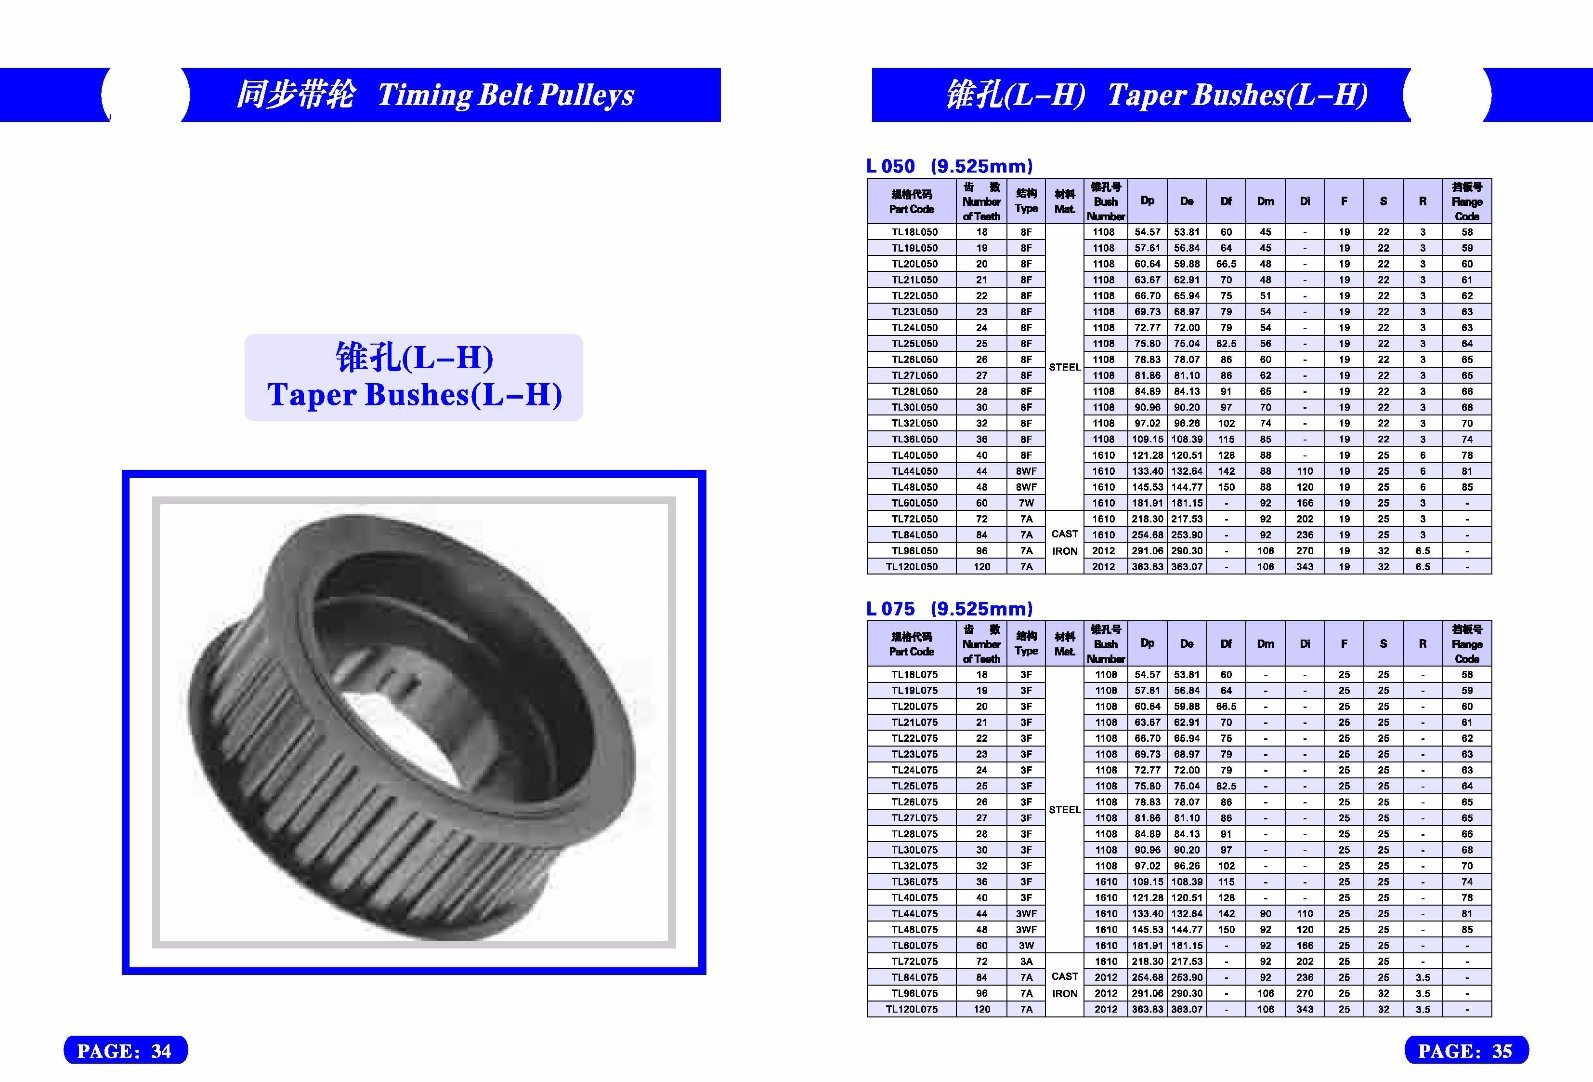 Timing Belt Pulley Specifications Gt2 Small Pulleys For 3d Printer China Q1 What Is Your Terms Of Packing A Generally We Pack Our Goods In Single Color Box If You Have Special Request About Pls Negotiate With Us